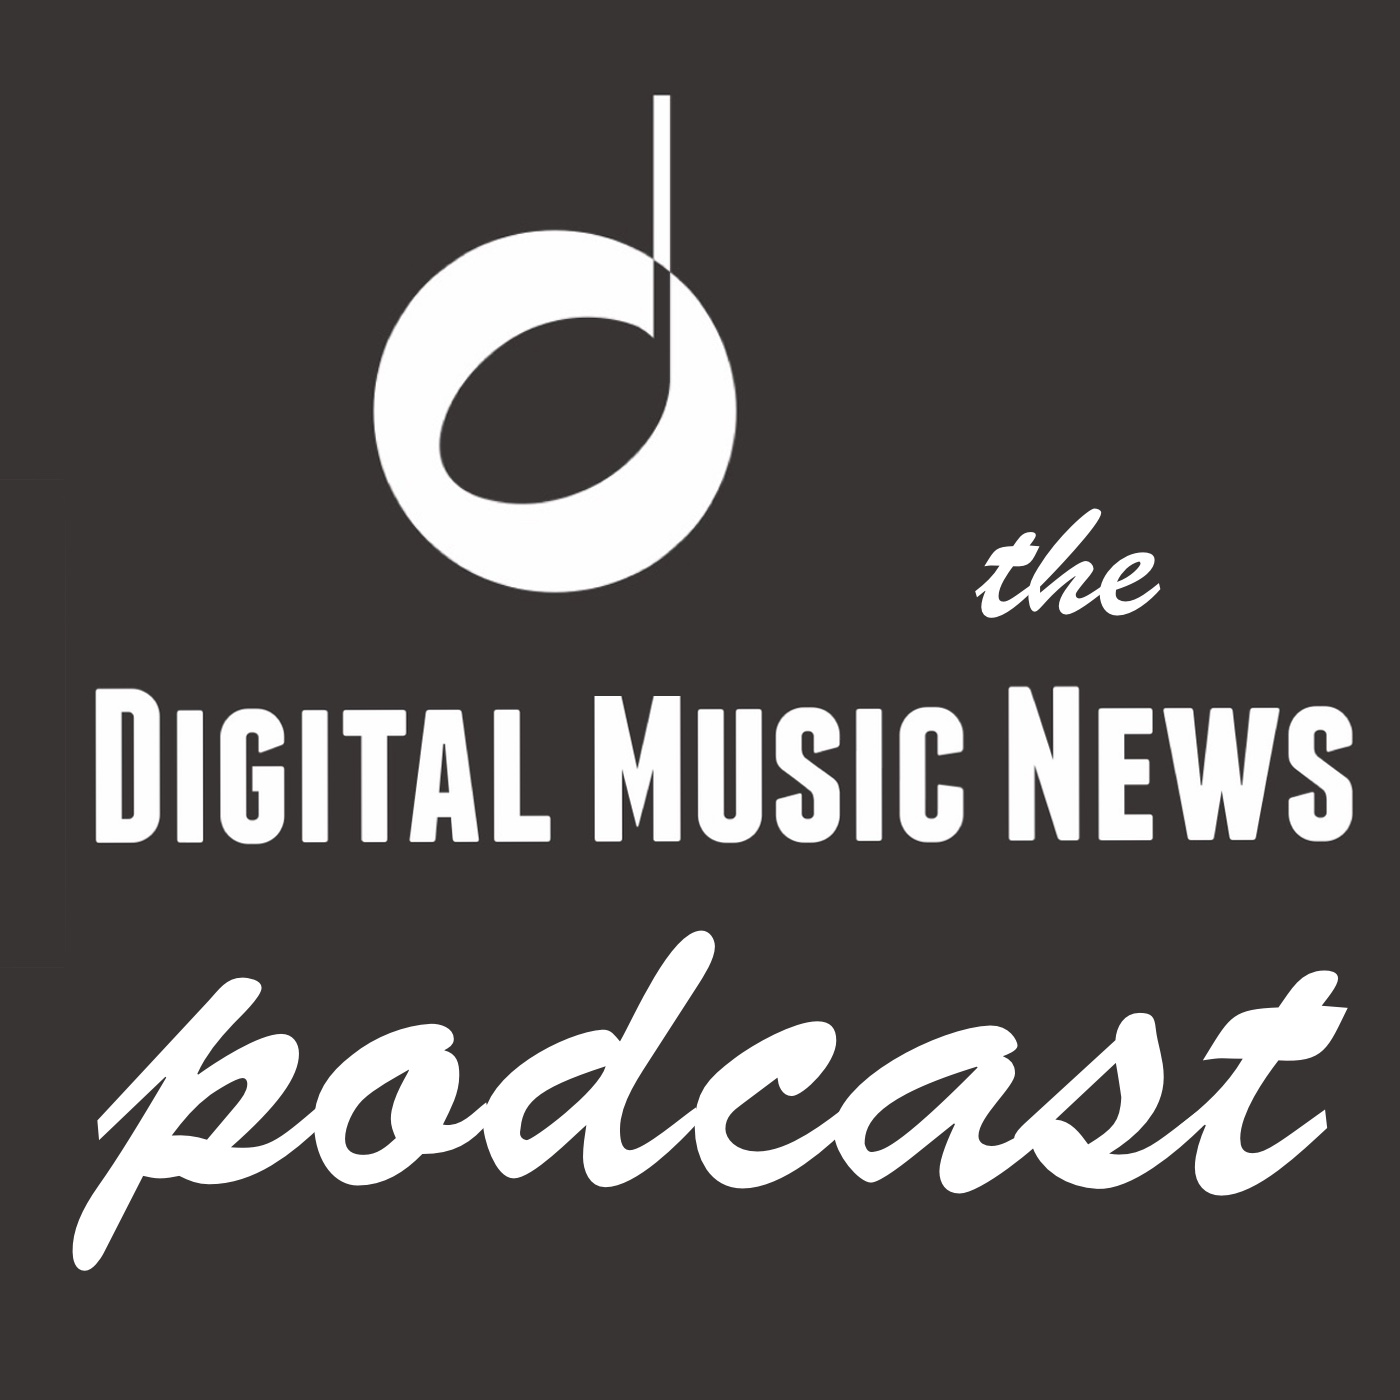 An Insanely Detailed Discussion About the Music Modernization Act